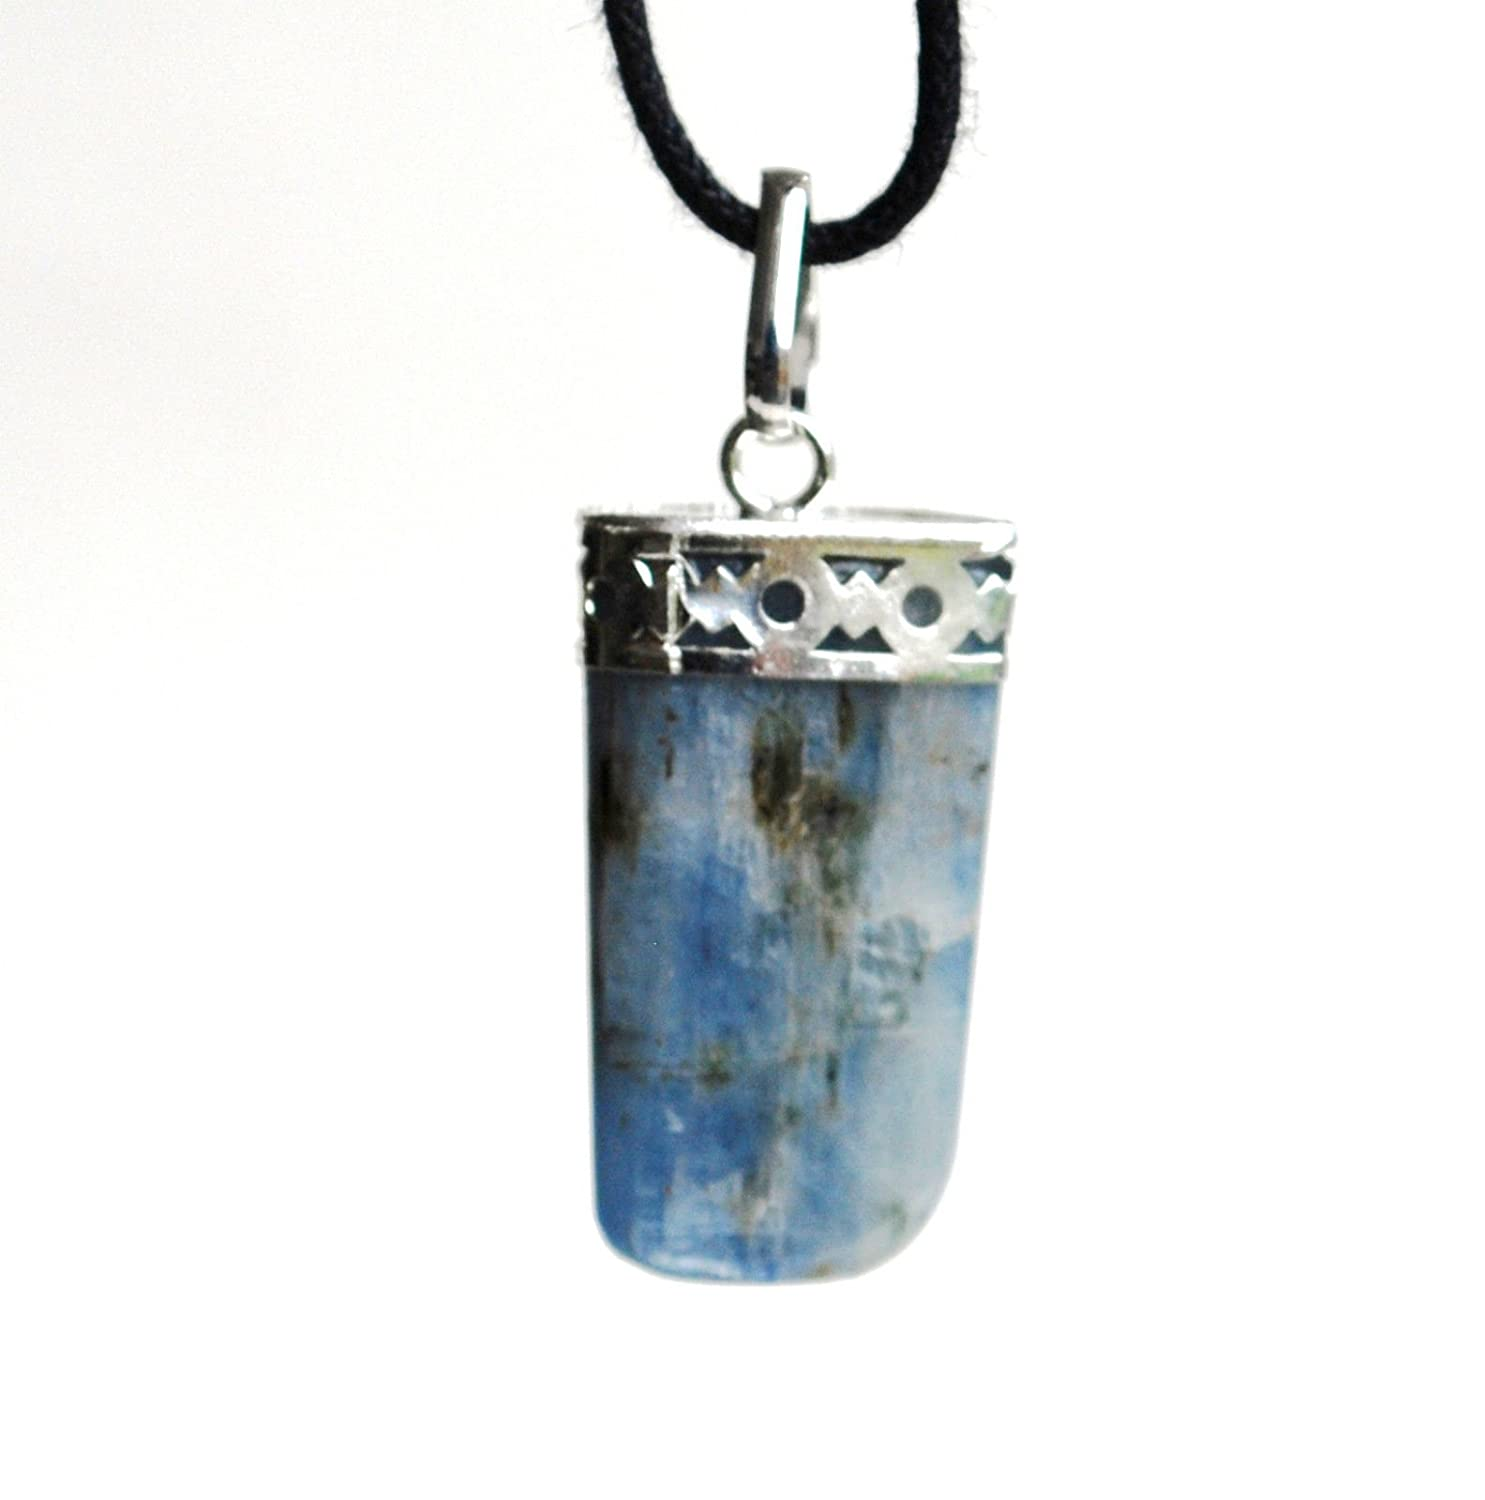 Reiki Energy Charged Raw Kyanite Crystal Pendant with Cord (Beautifully Gift Wrapped) l7iThRpVLA